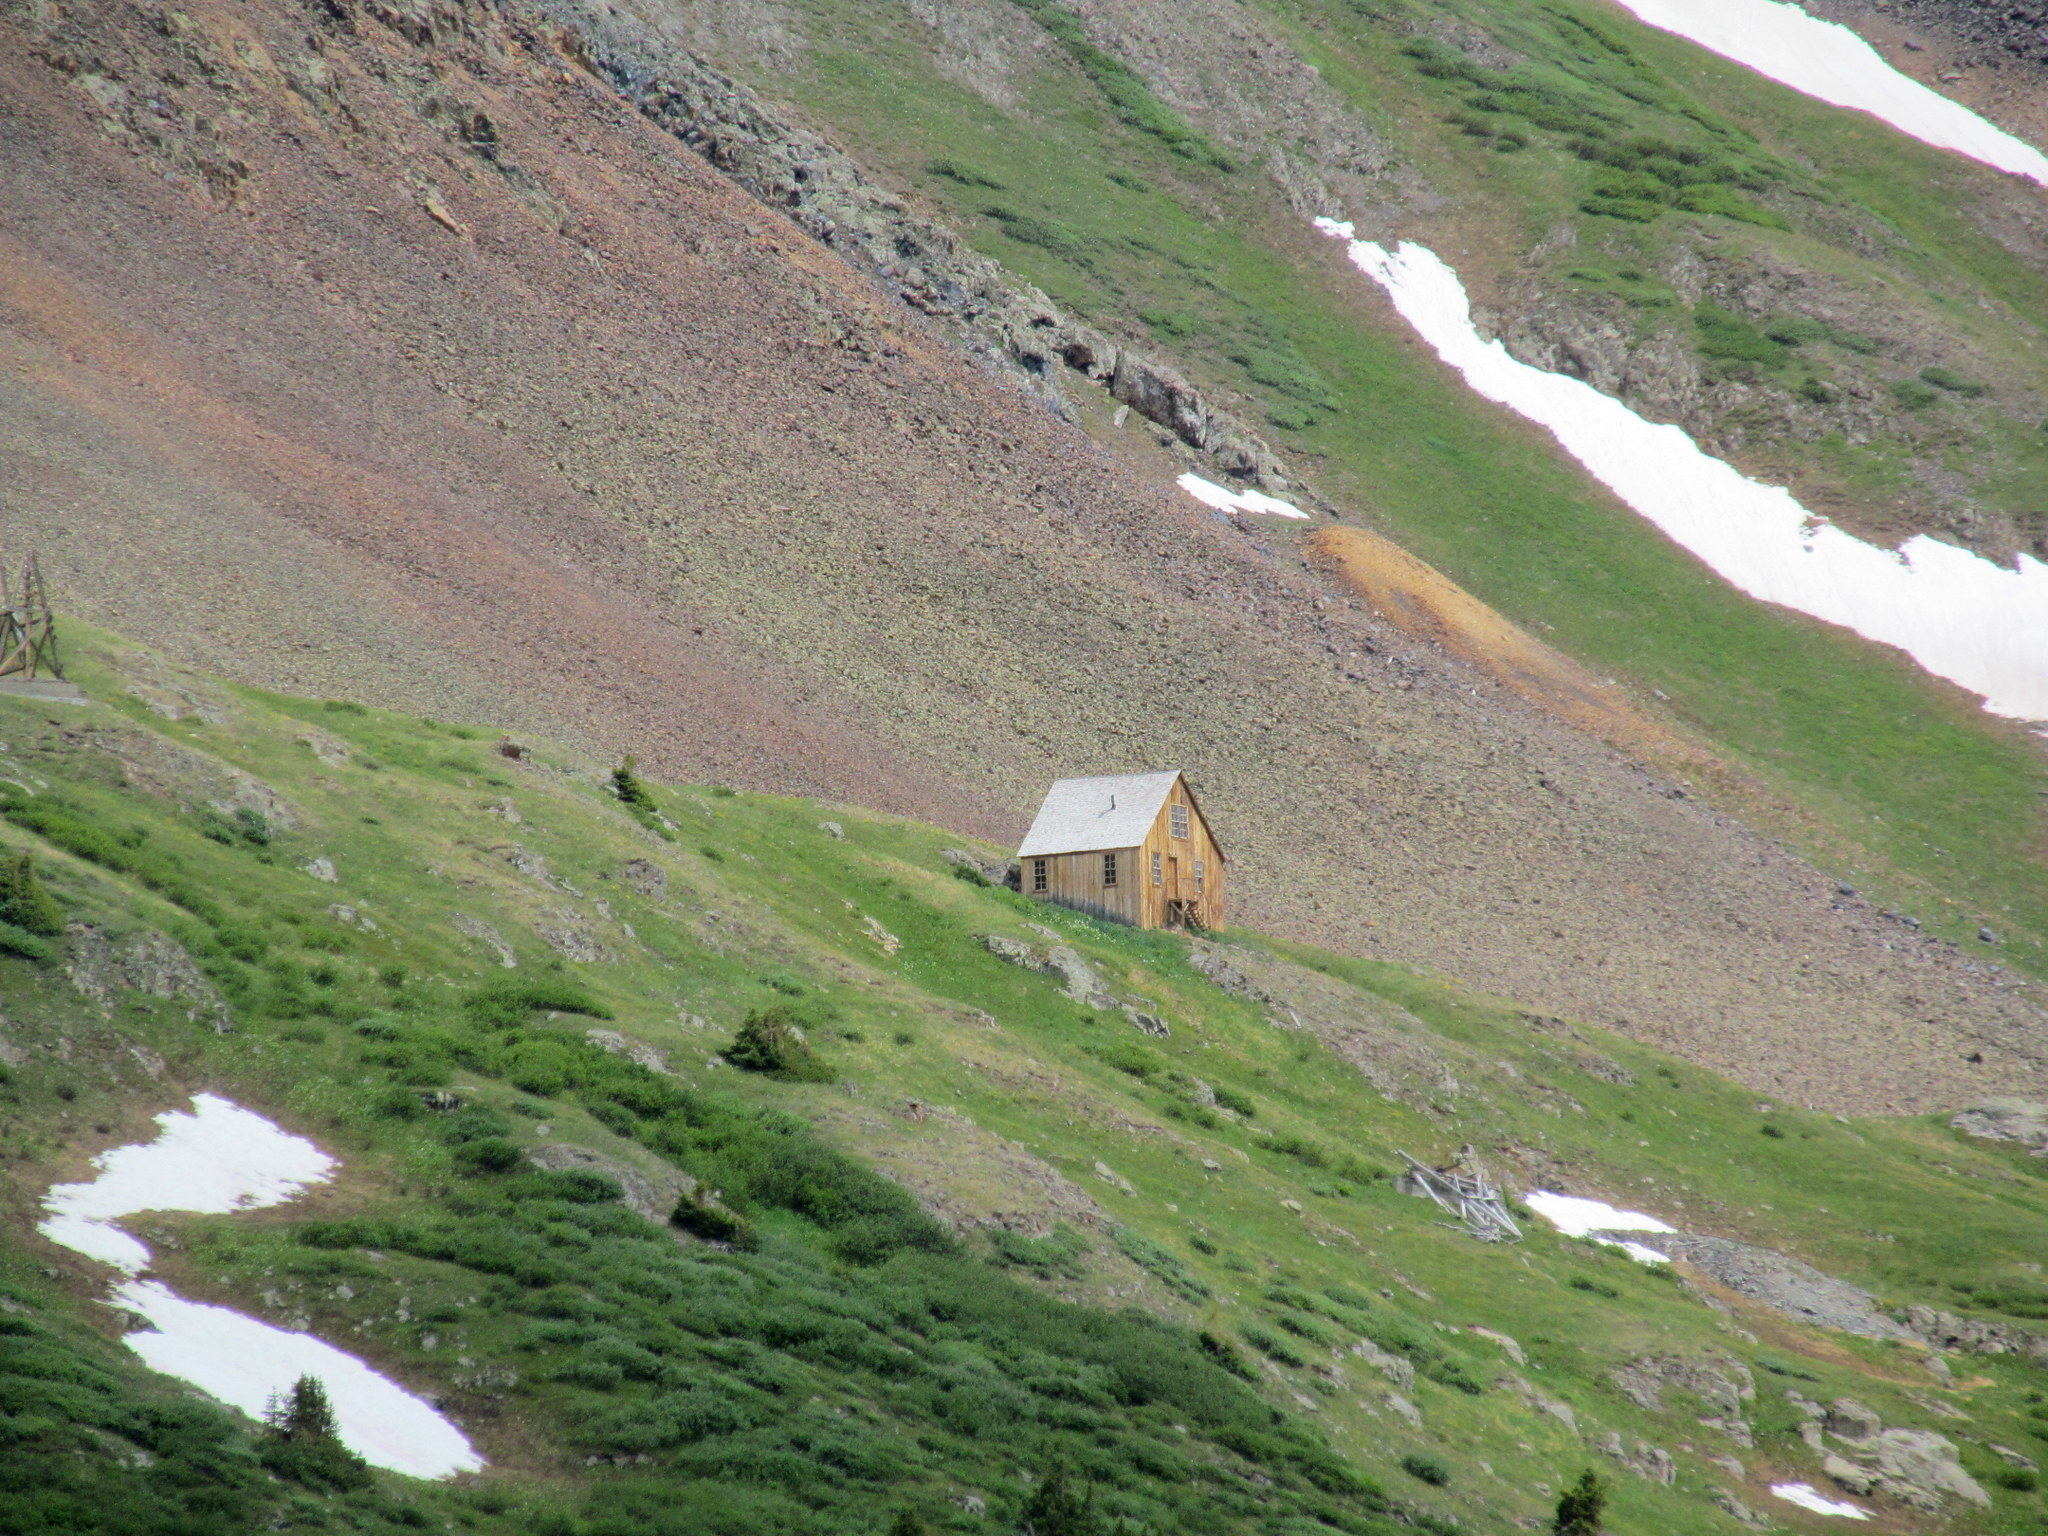 Photo: Placer Gulch cabin